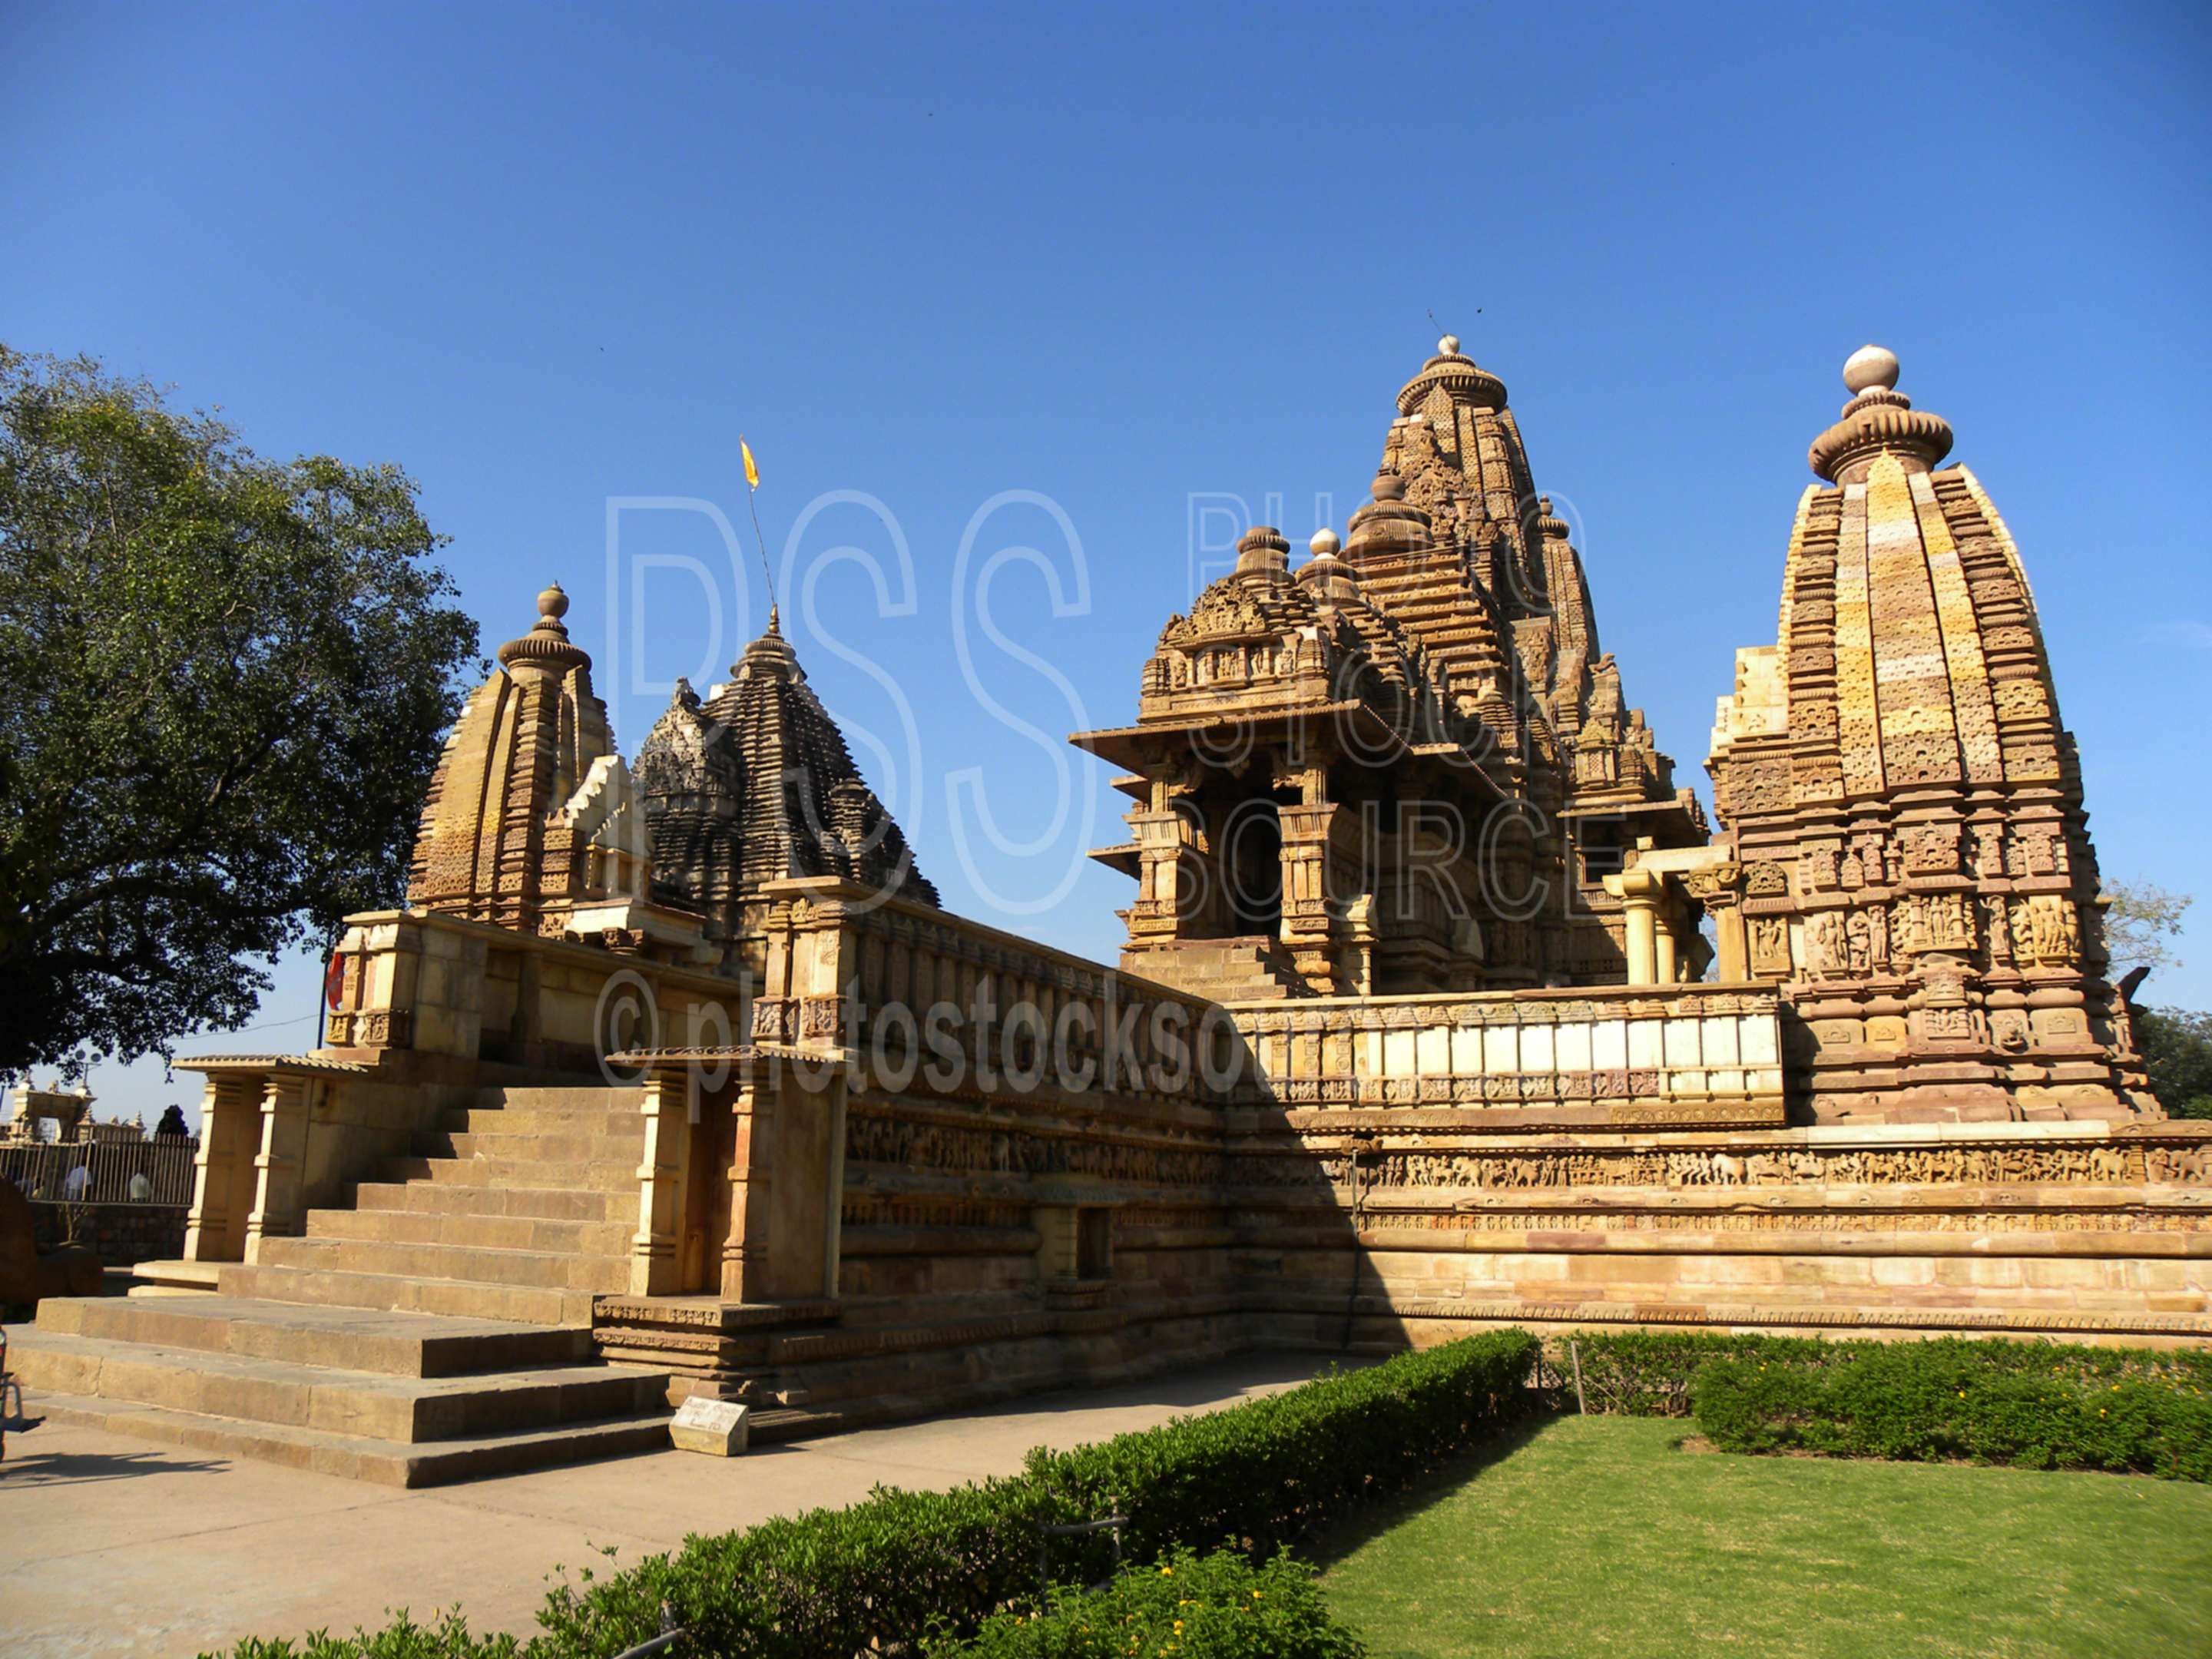 Photo of Lakshmana Temple by Photo Stock Source temples